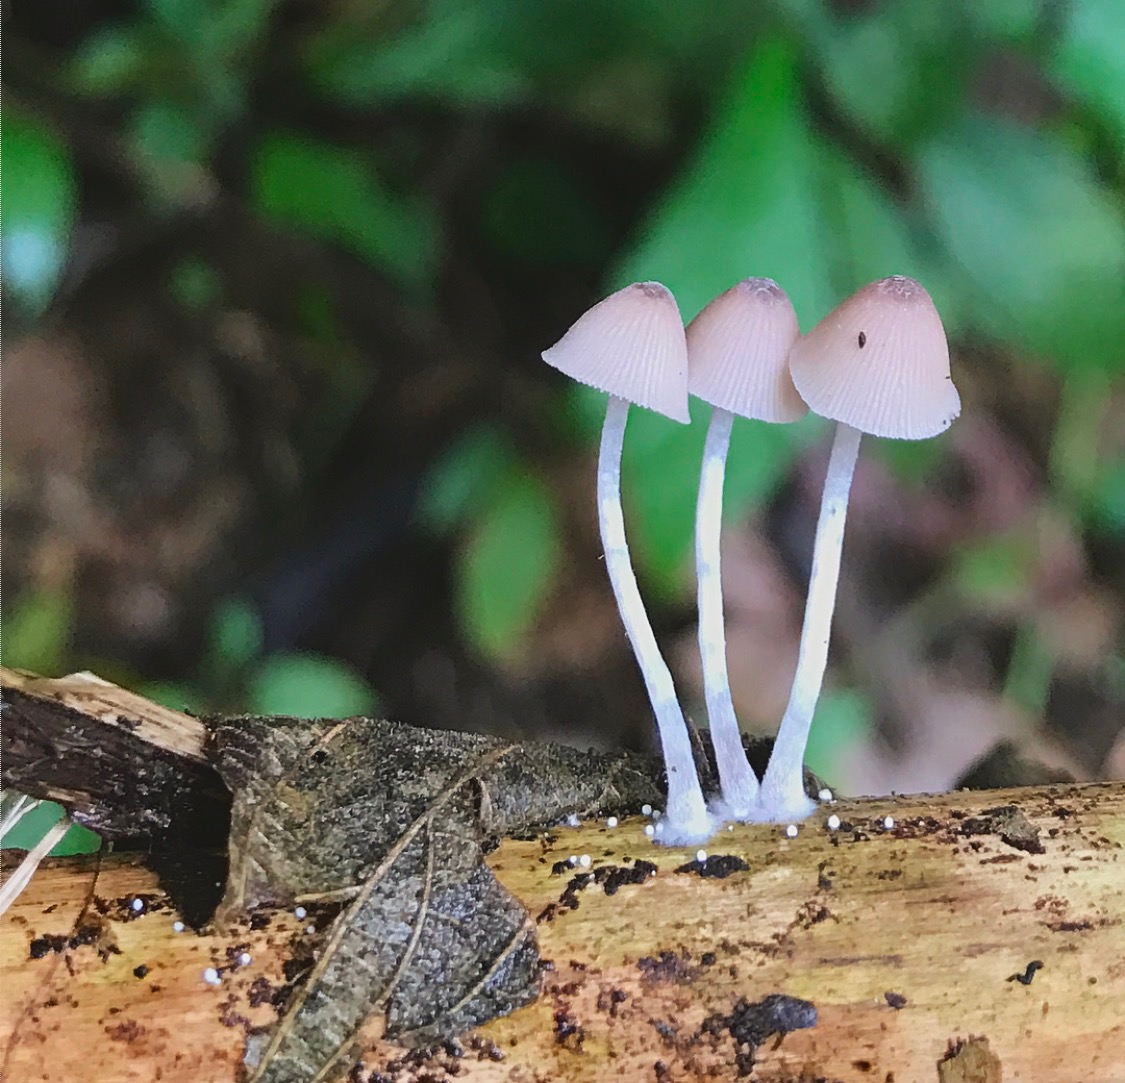 Mycena  sp. found in a Costa Rican cloud forest.